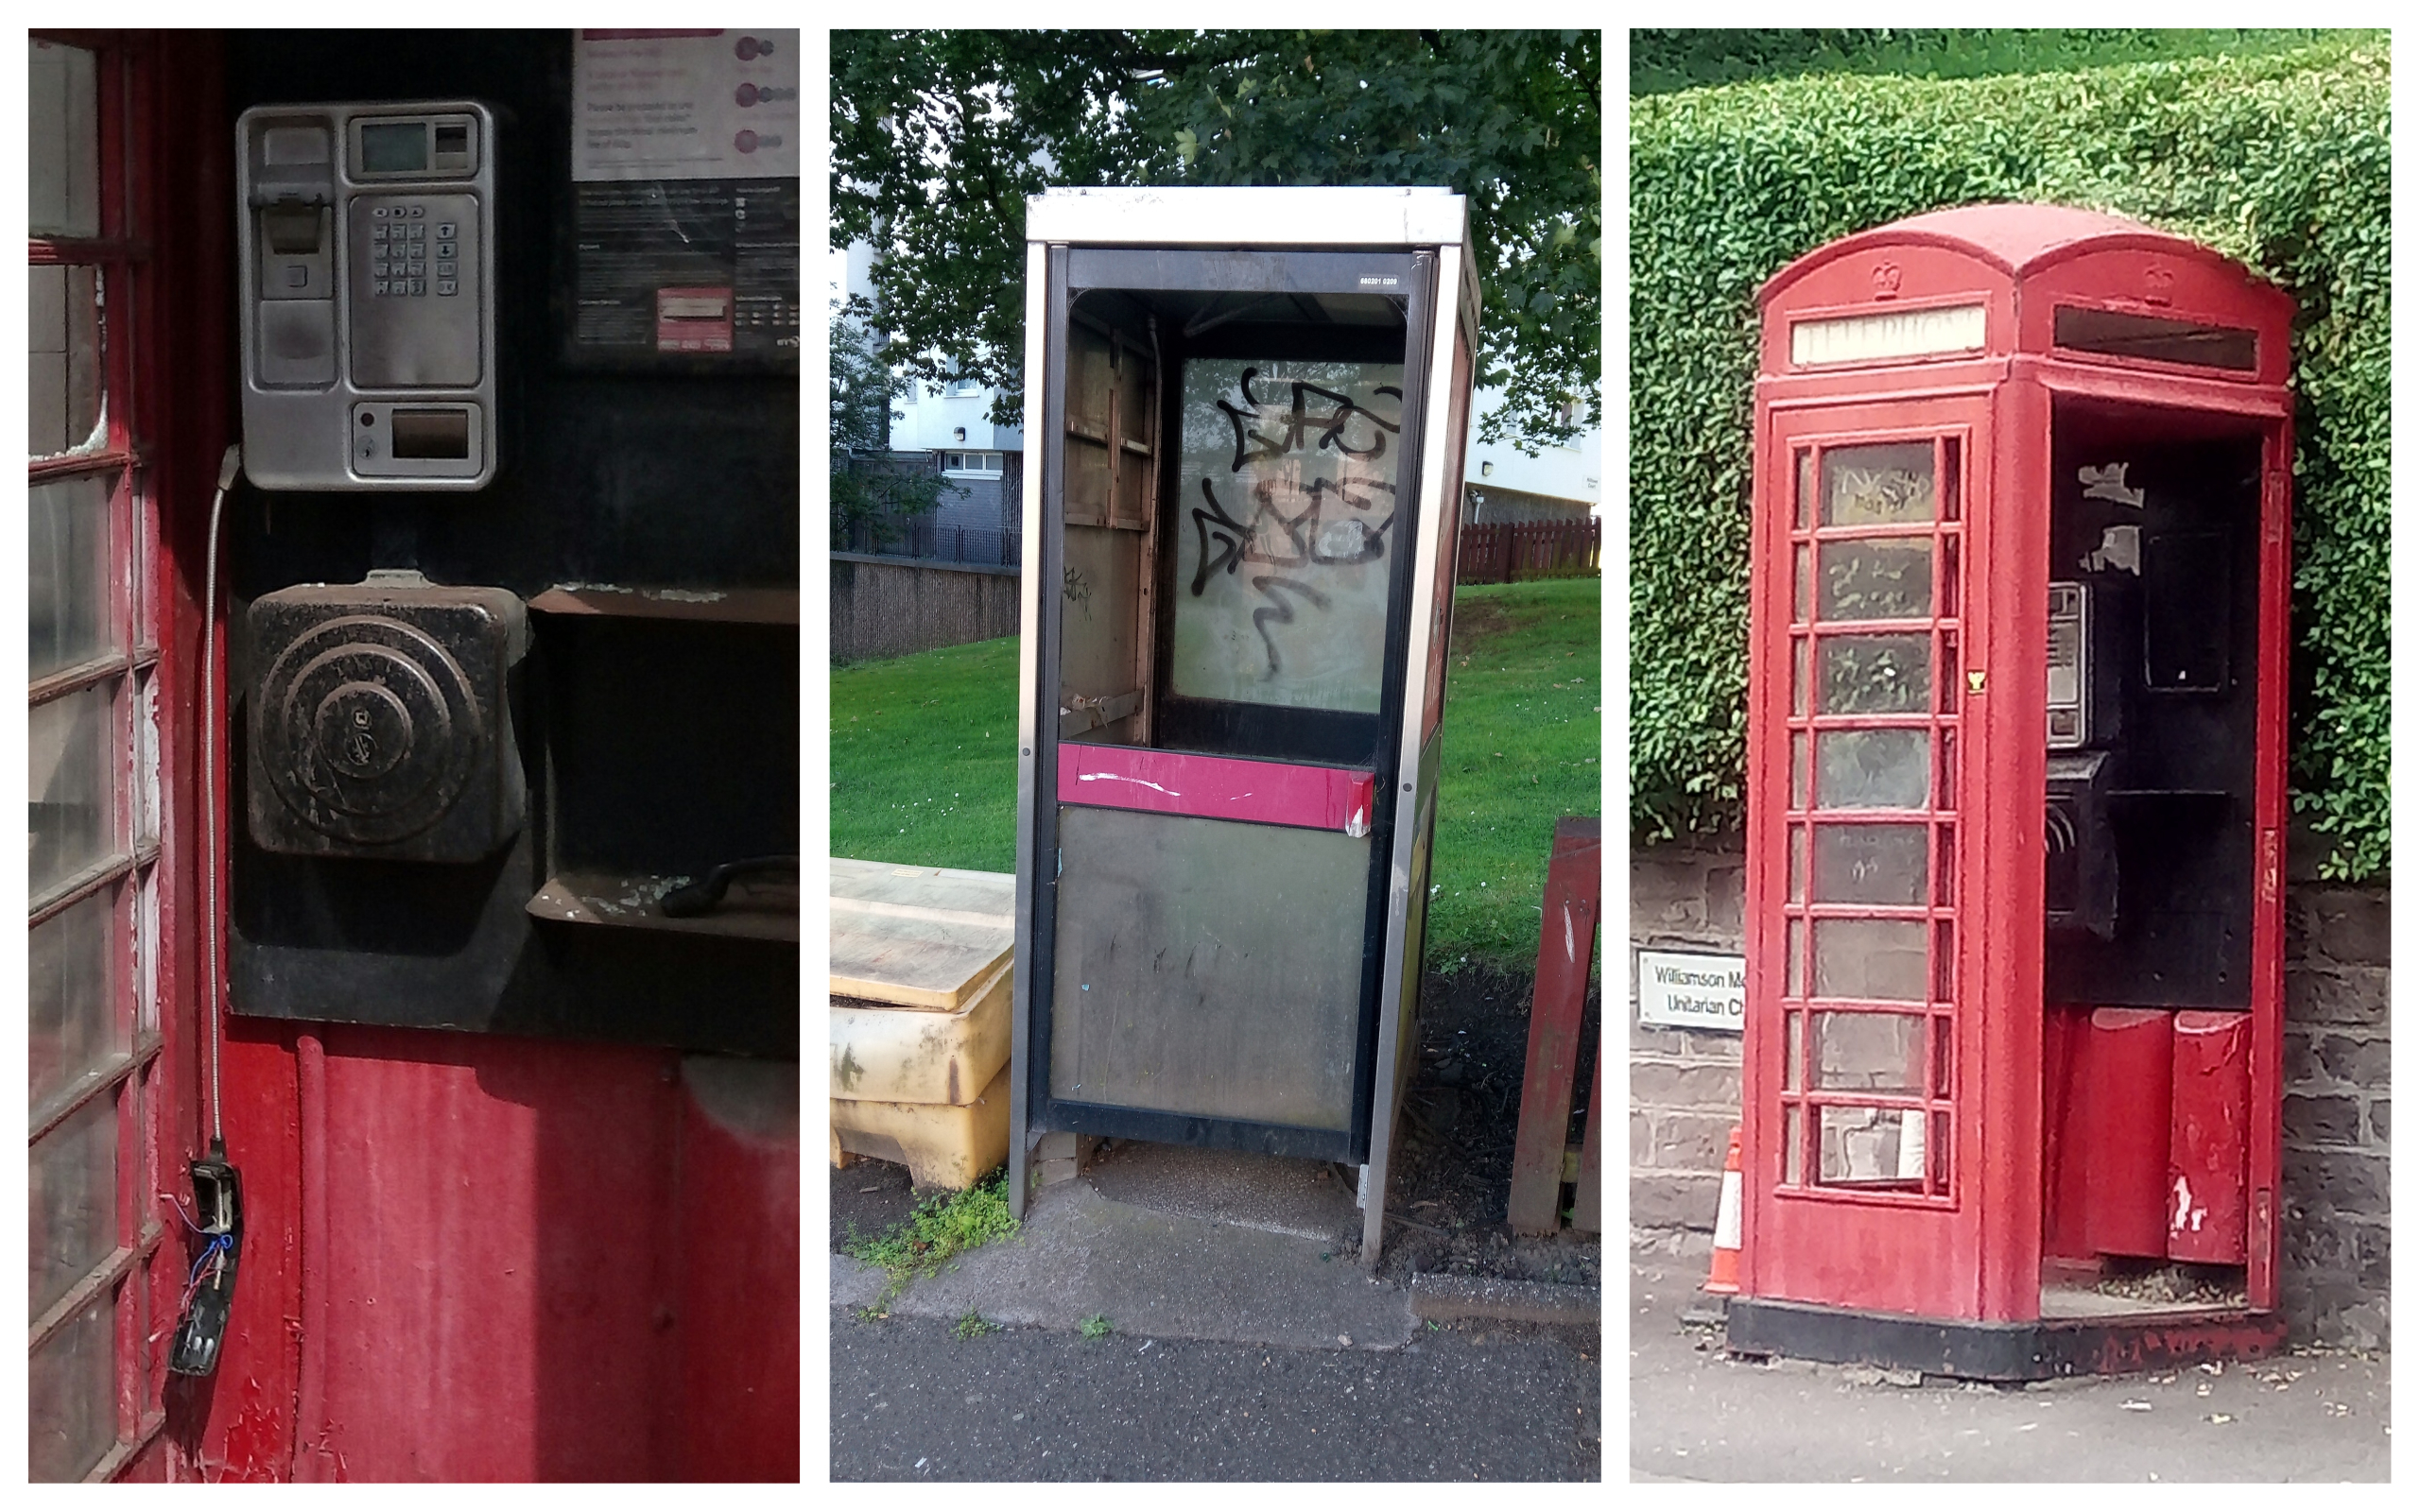 Phone boxes in Coldside